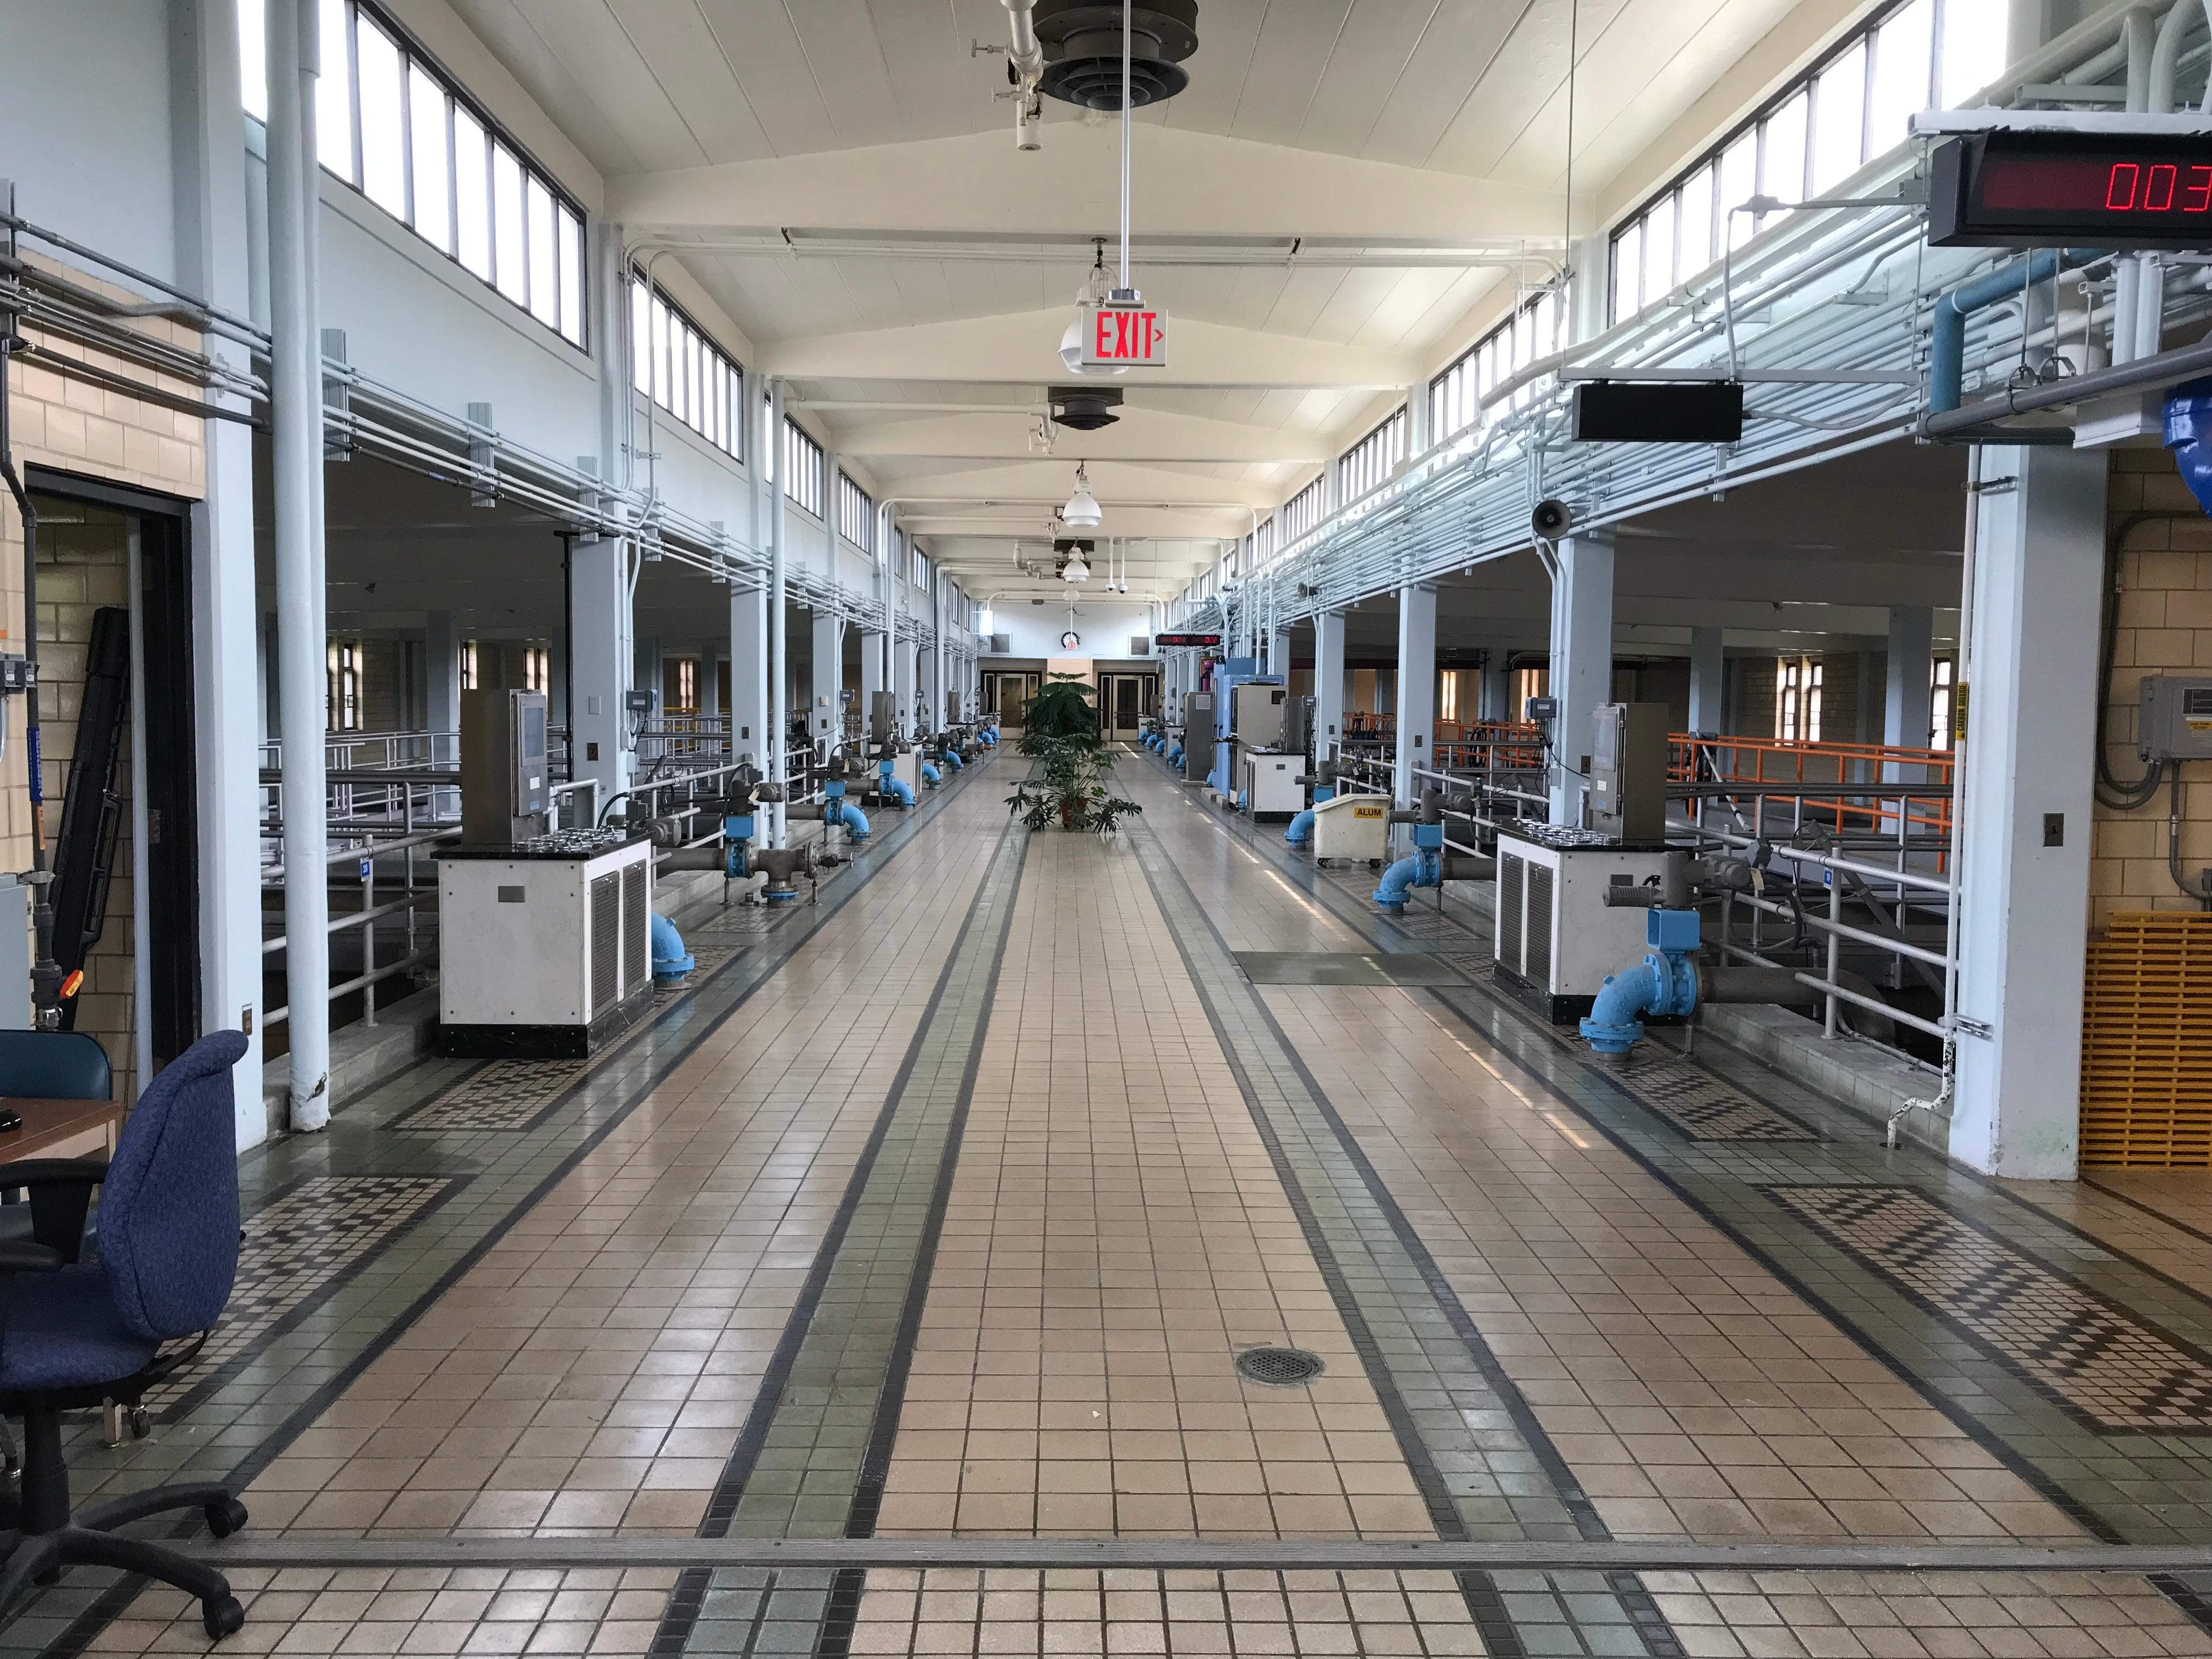 The Ann Arbor Water Treatment Plant has 26 carbon filters throughout its facility (Photo: Joce Sterman, Sinclair Broadcast Group)